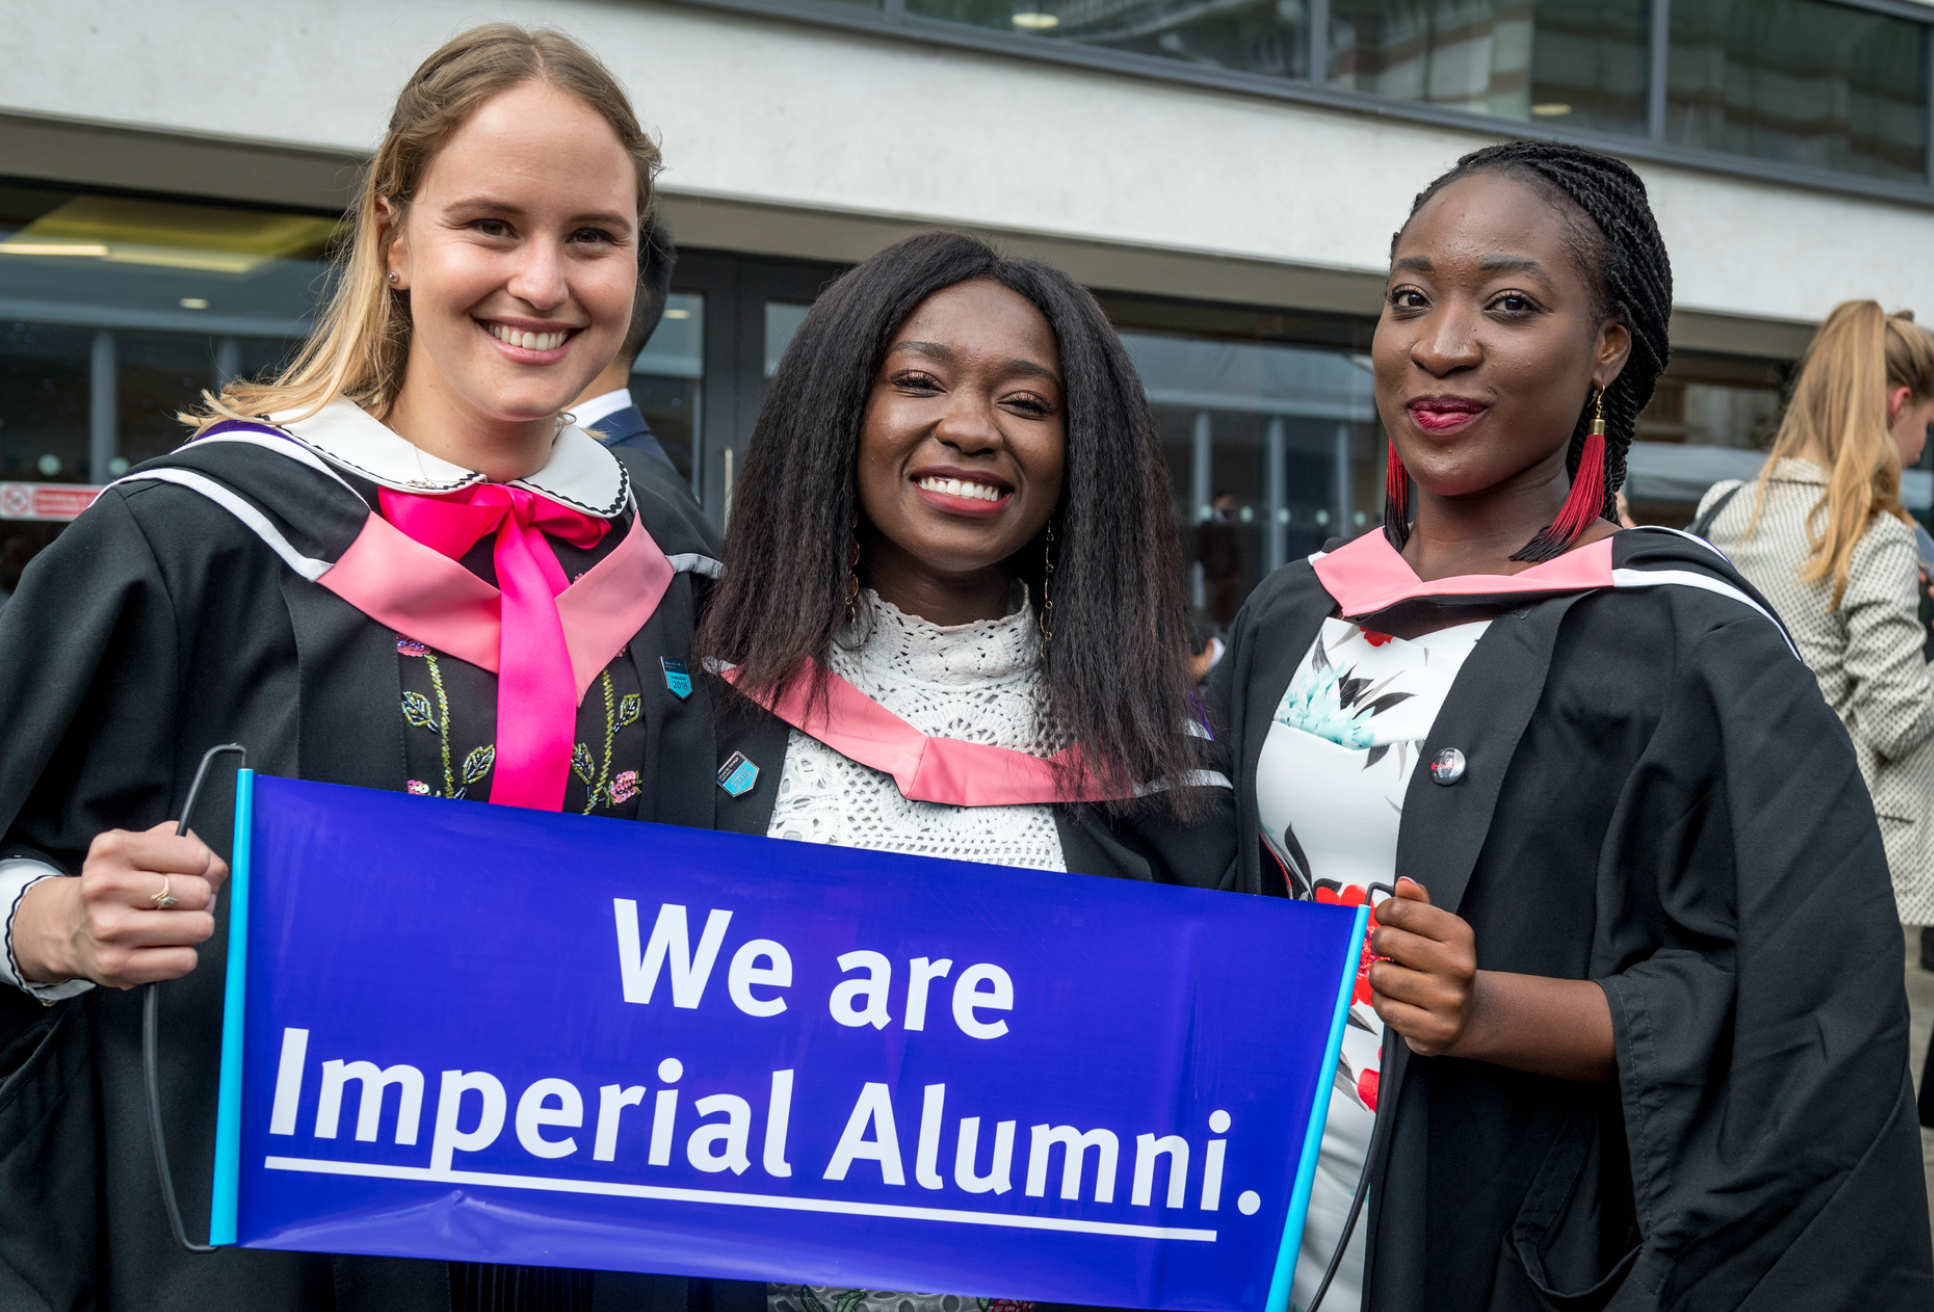 Students hold up 'We are Imperial Alumni' sign